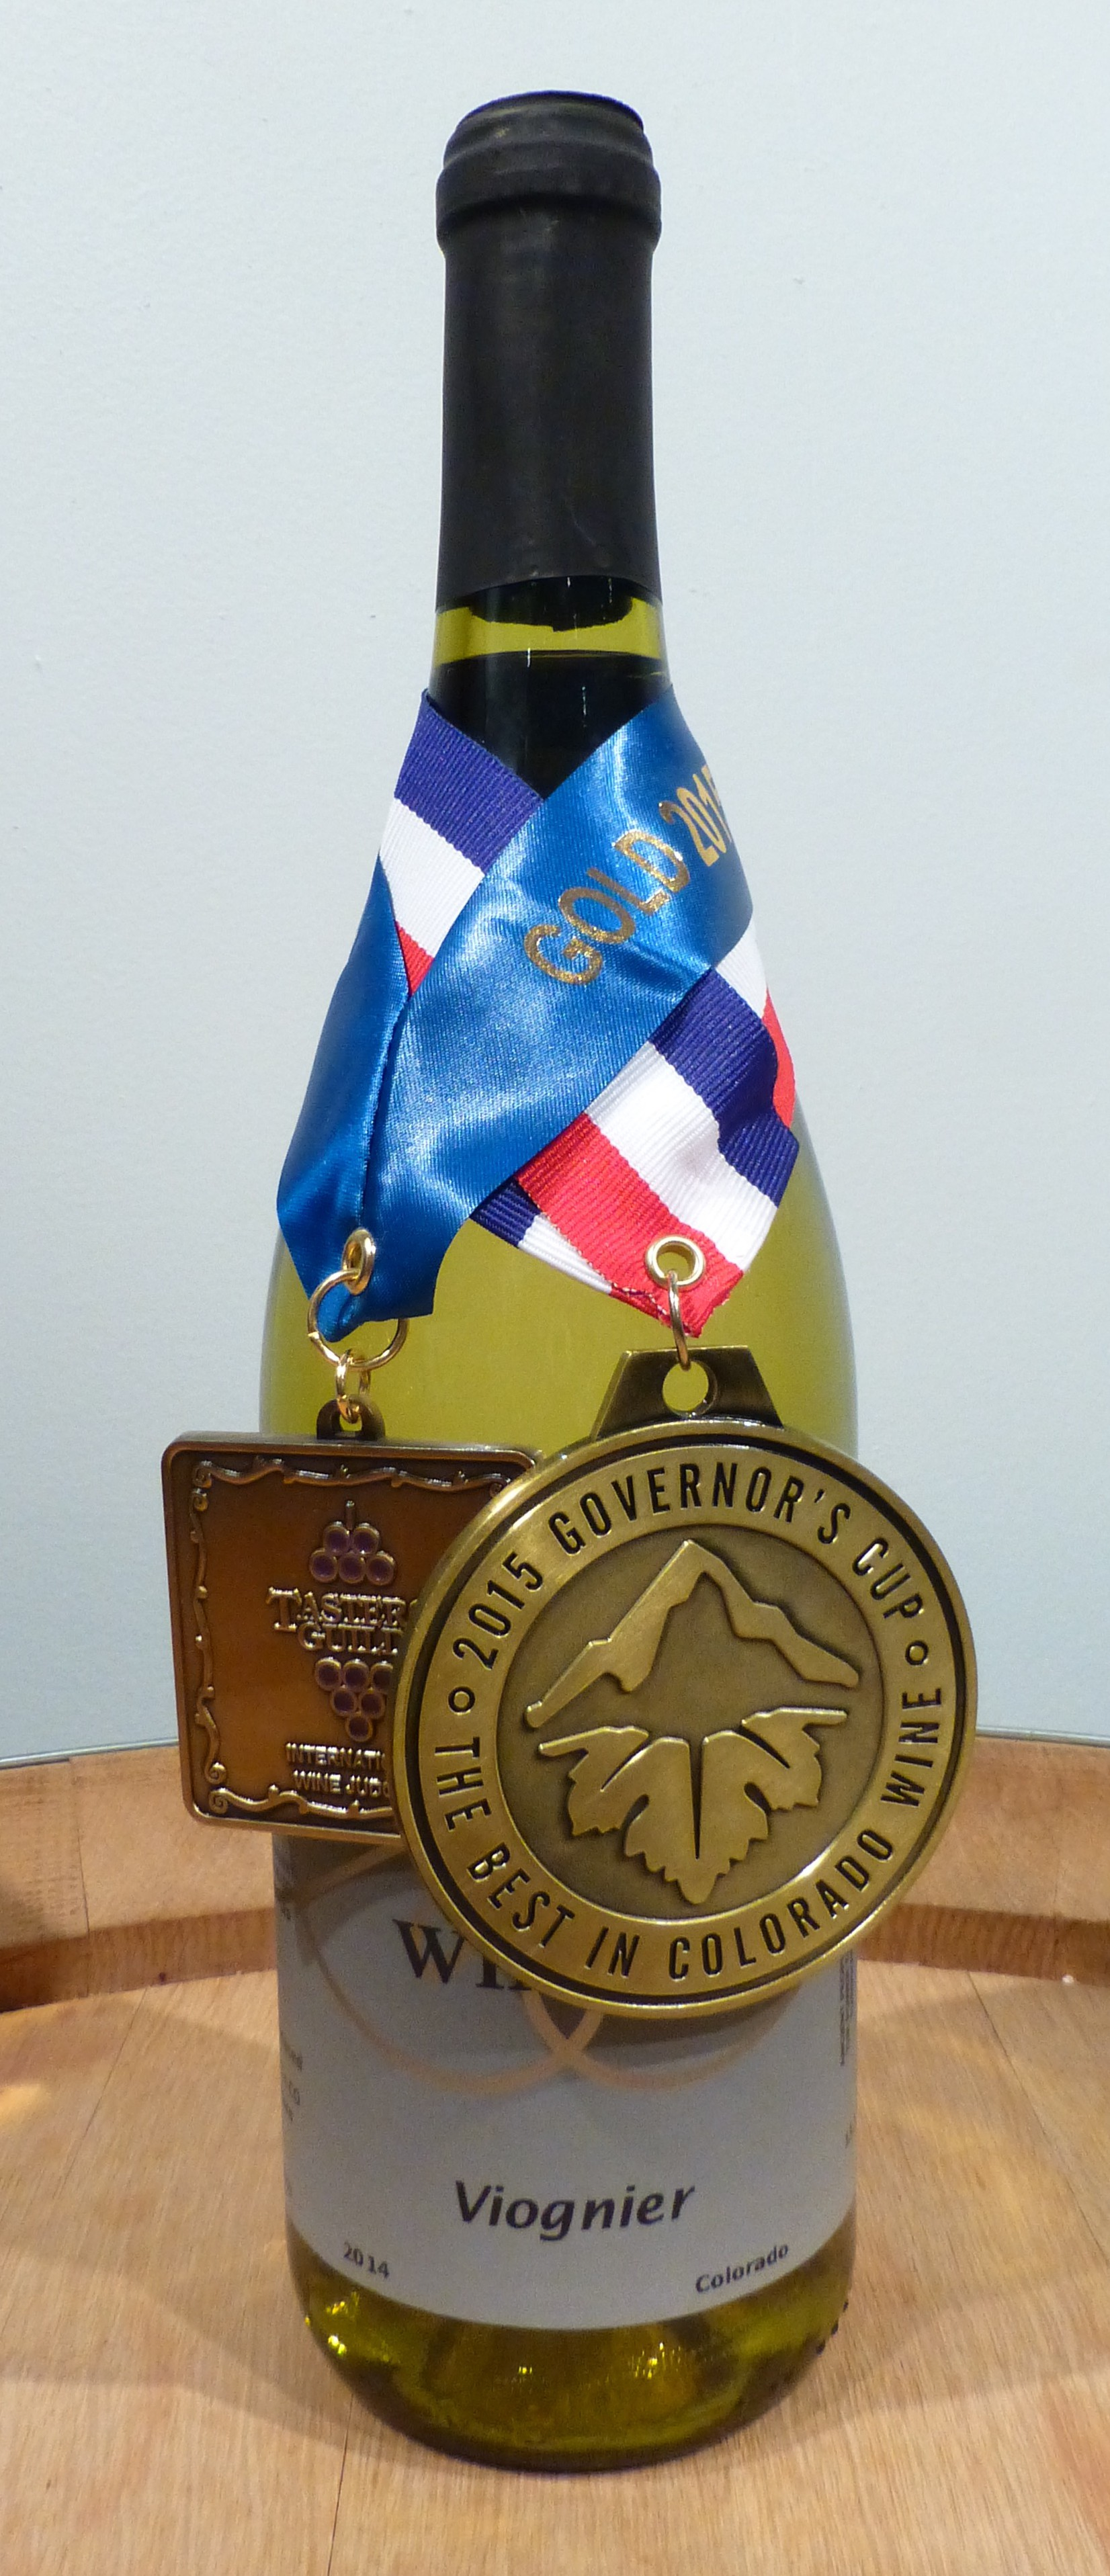 Viognier 2015 Governors Cup winner